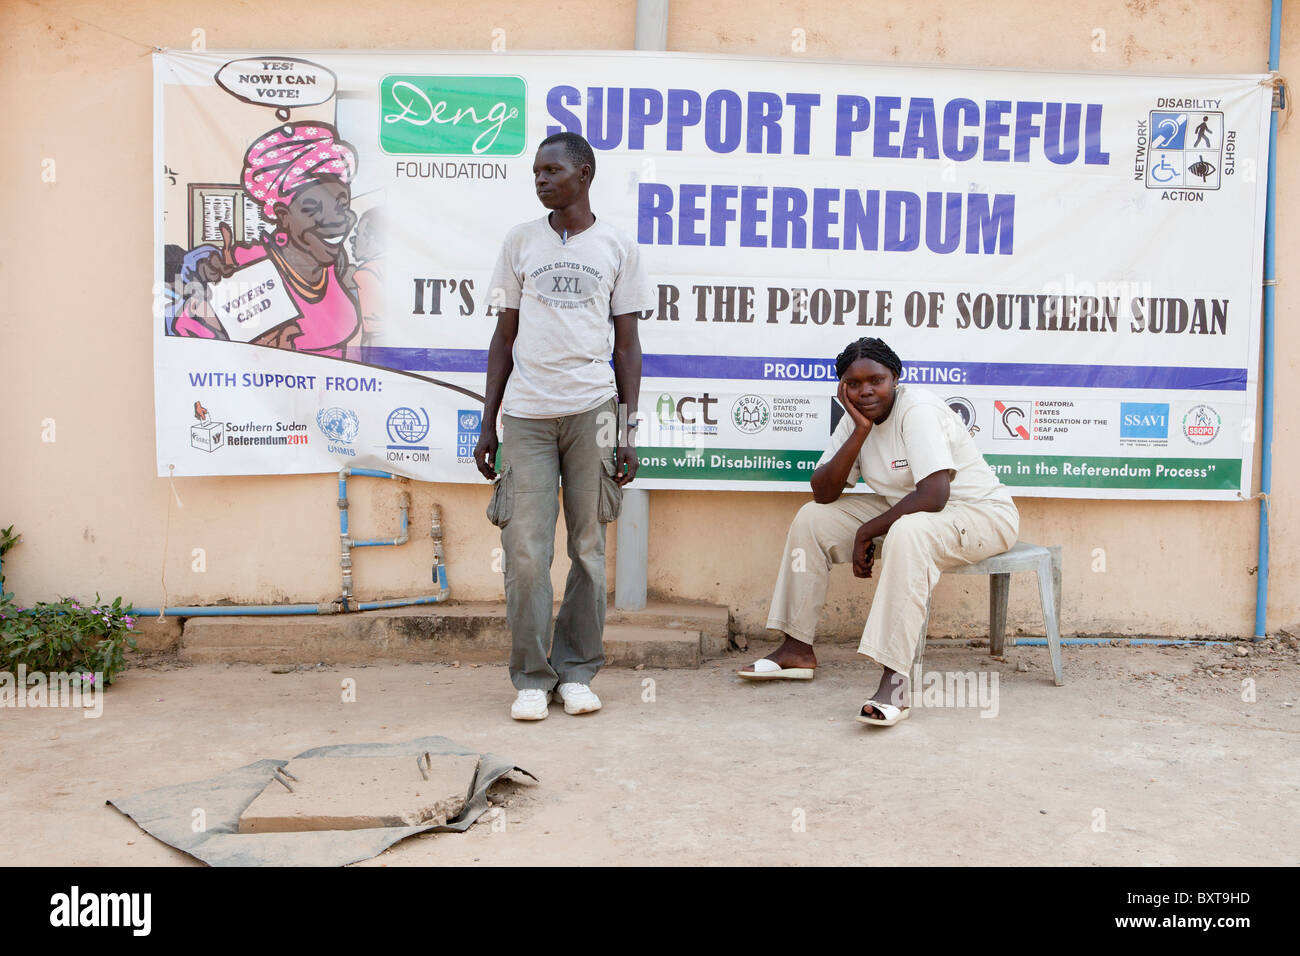 JUBA, SOUTHERN SUDAN, 8th December 2010: Referendum poster on a street corner in central Juba town. - Stock Image